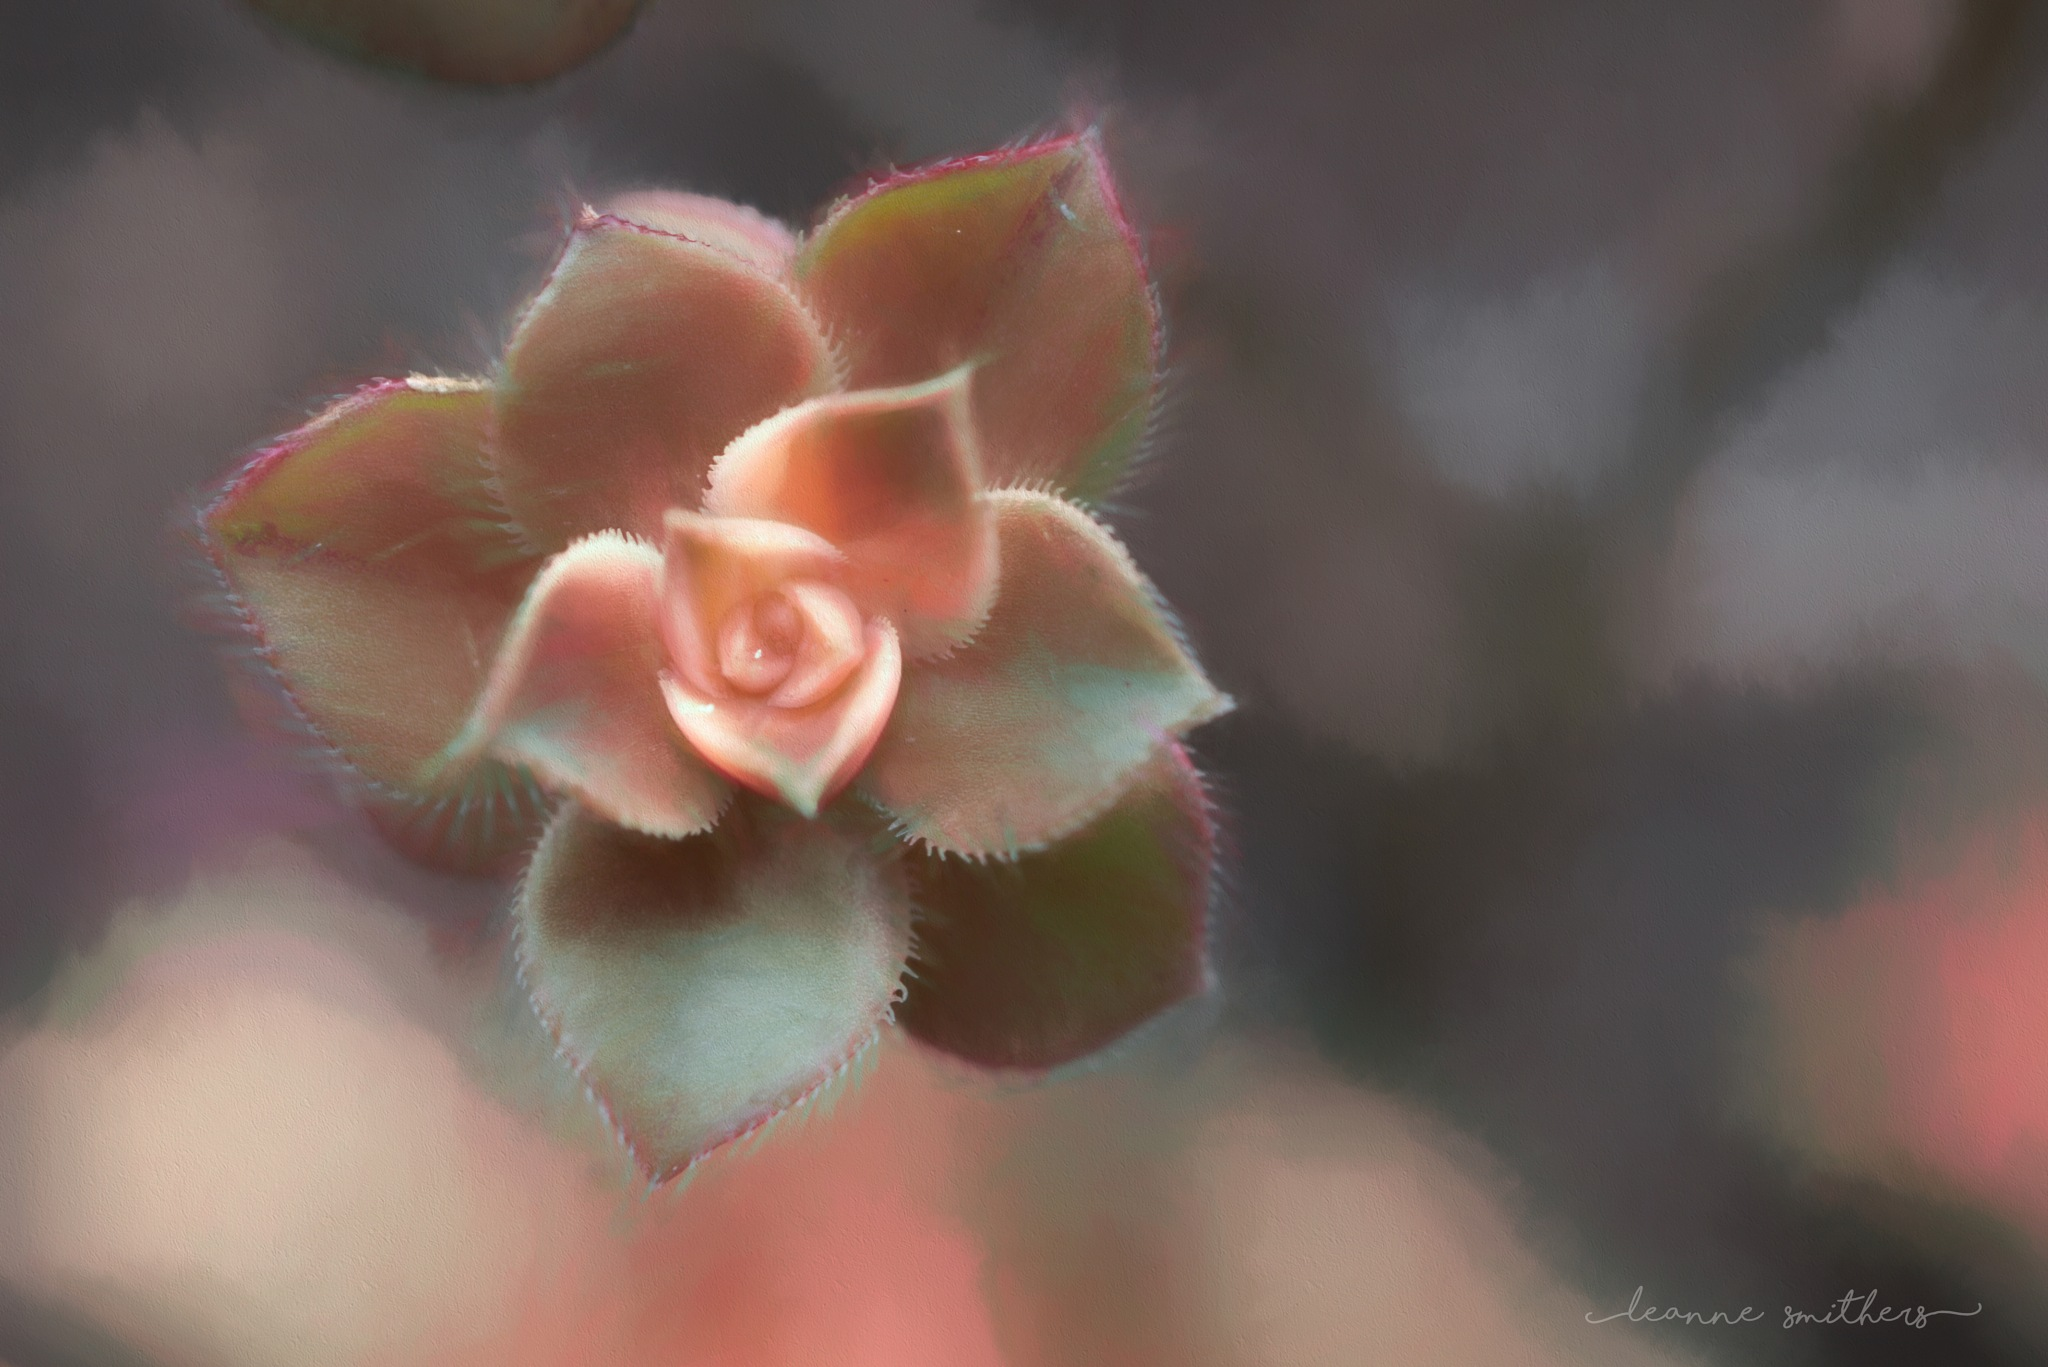 Succulent by Leanne Smithers